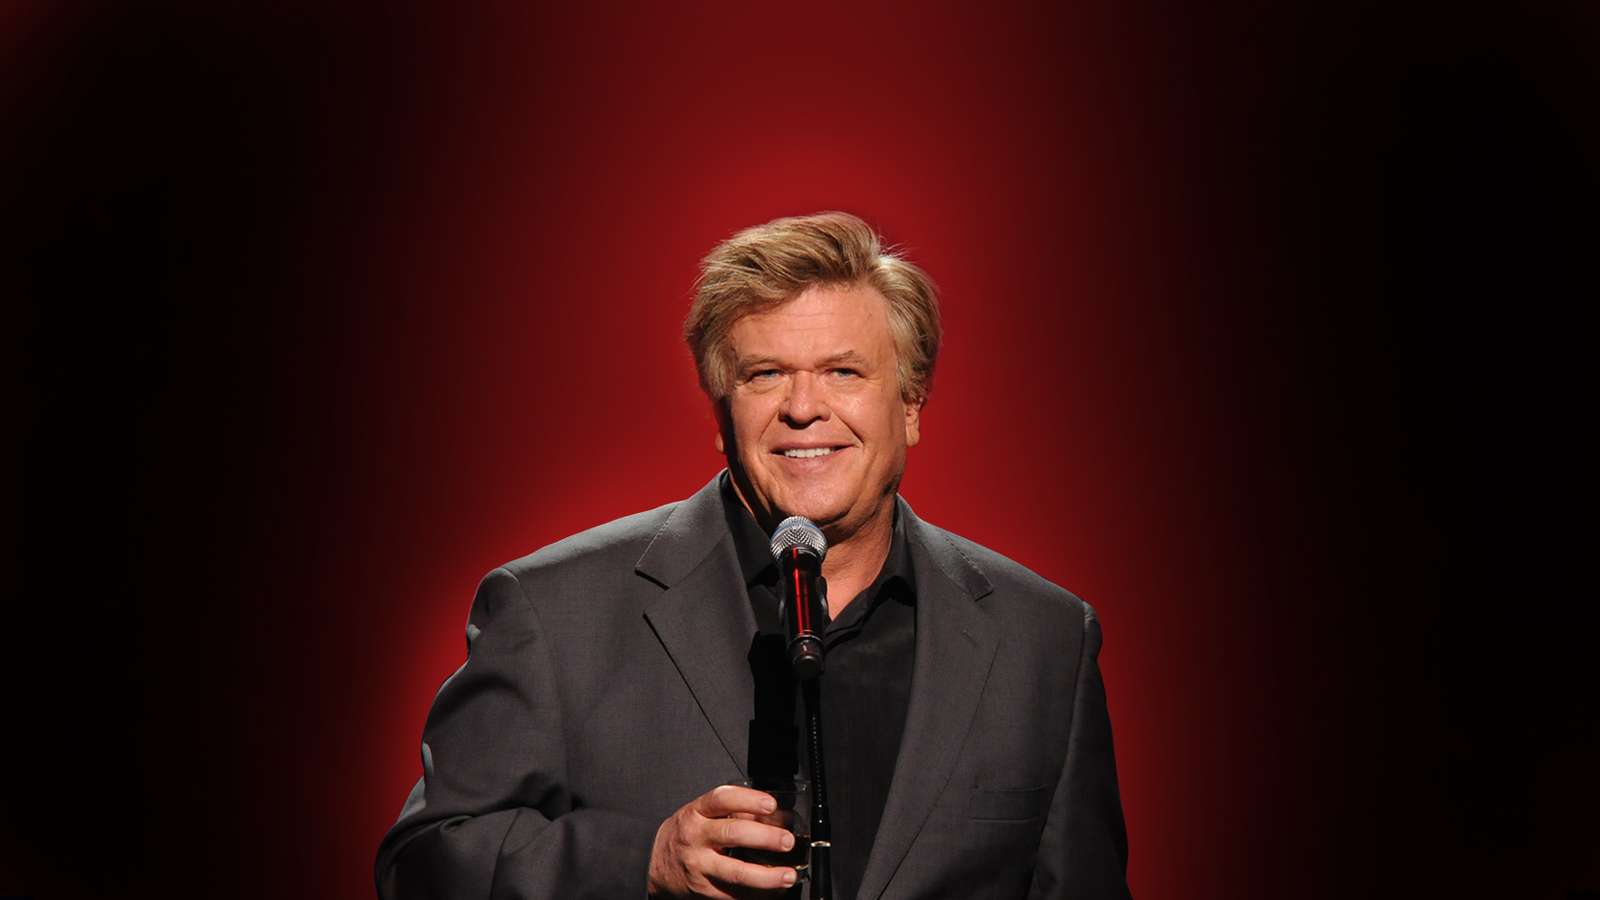 Ron White (18+ Event) (Rescheduled from 4/17/2020, 11/5/2020)